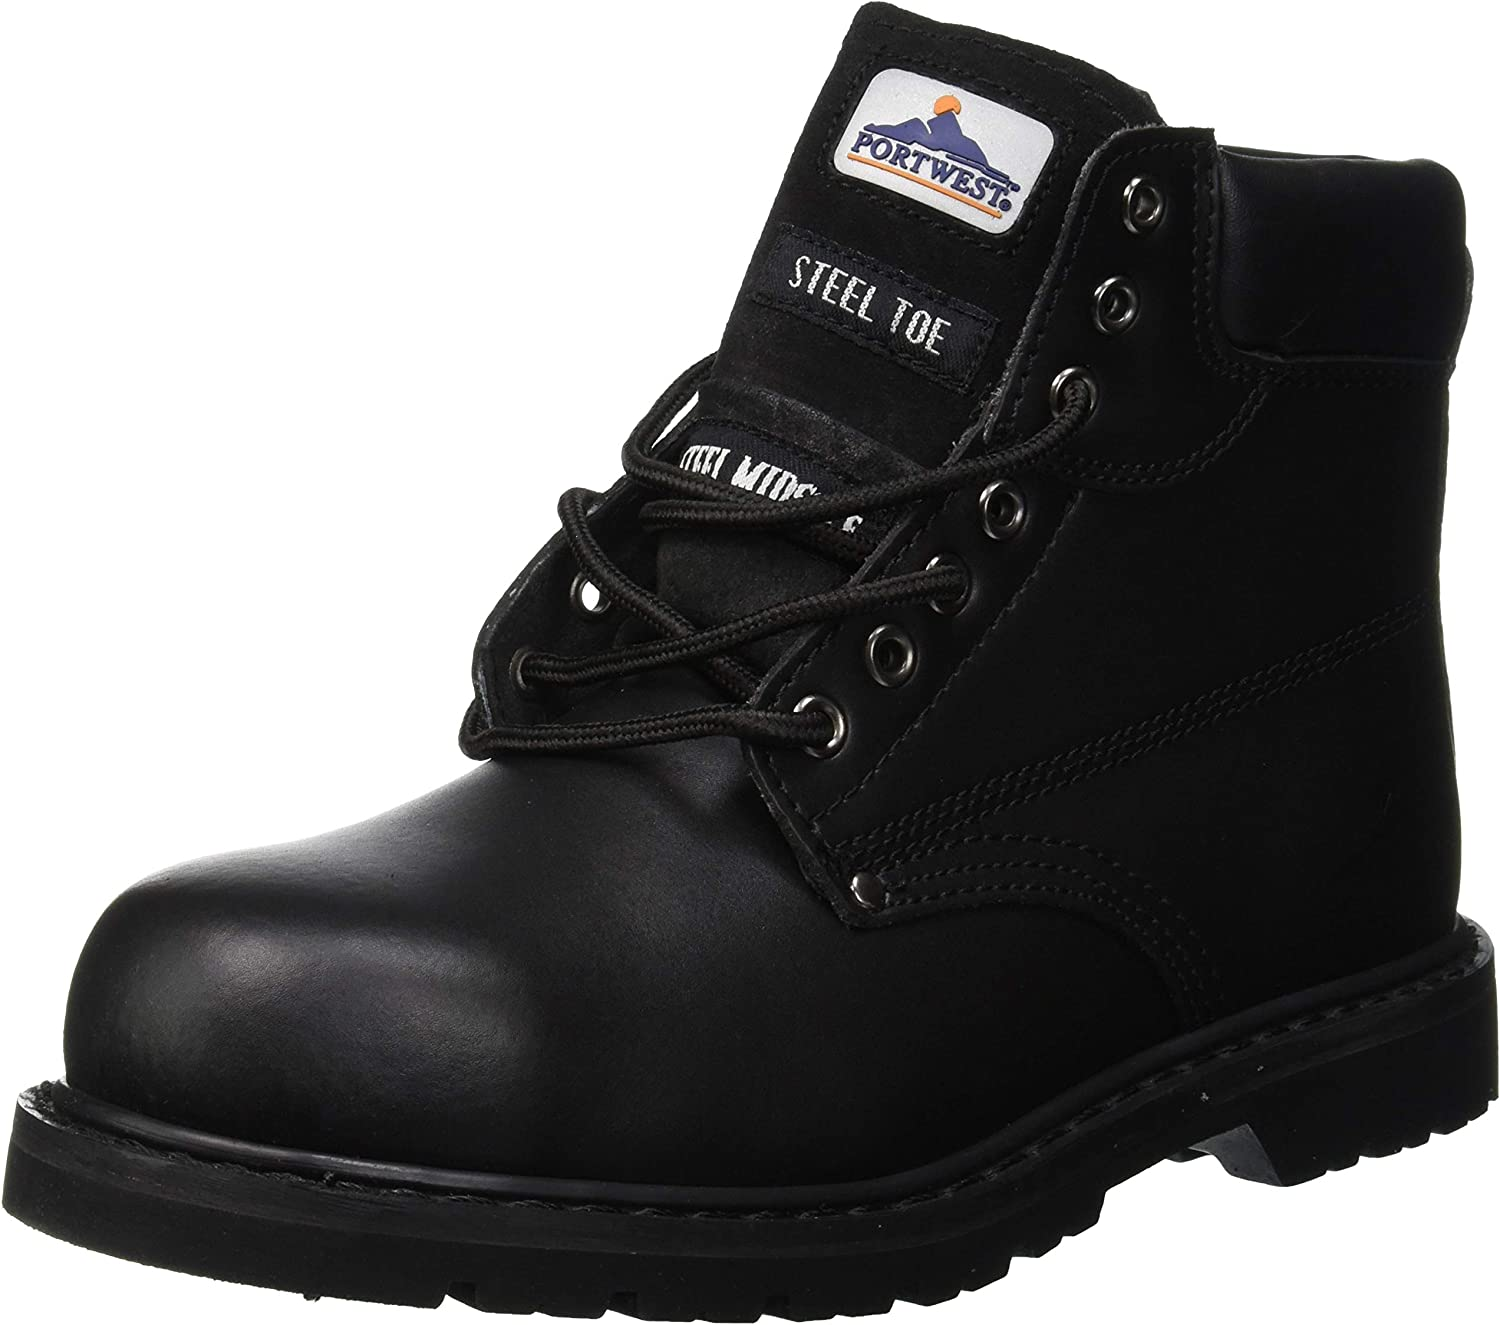 TALLA 41 EU. Portwest FW16 - Boot welted 41/7 PAS, color Negro, talla 41